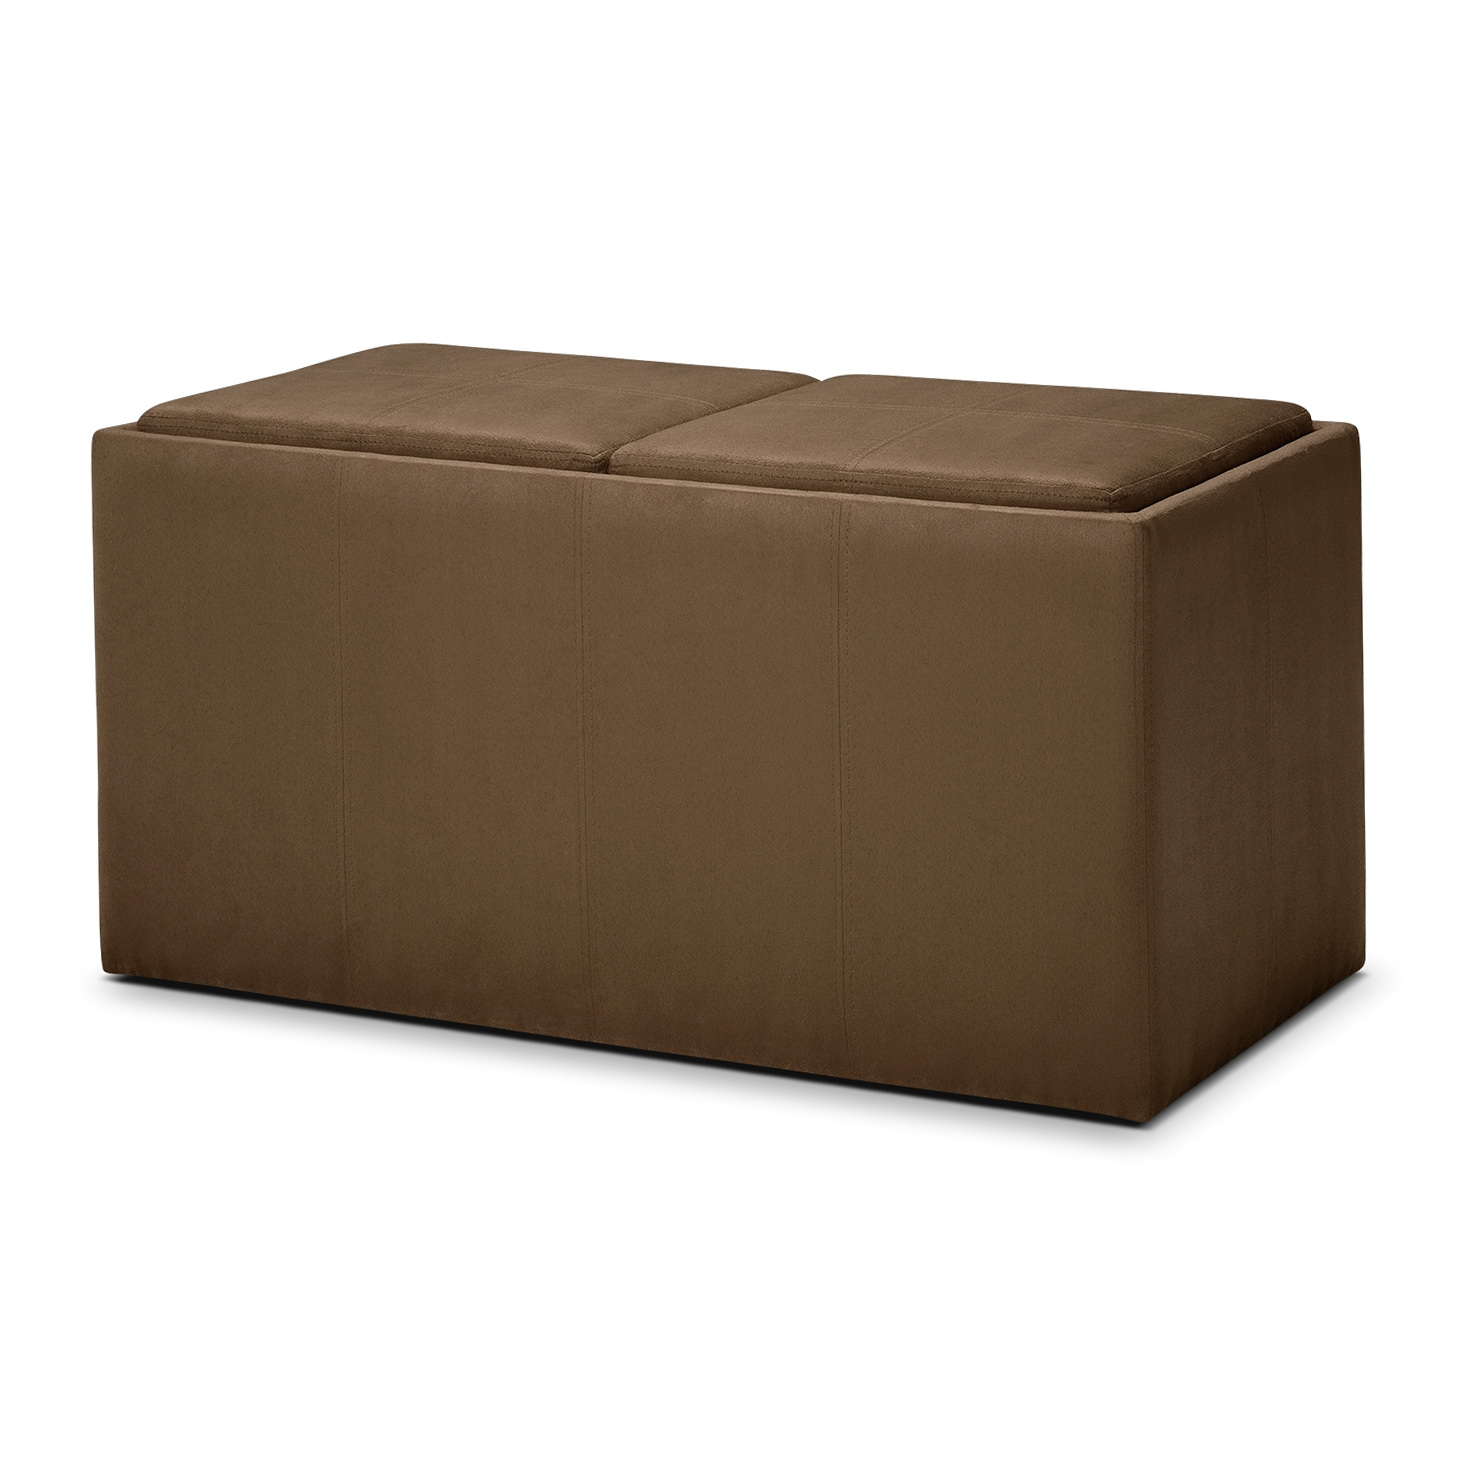 Fabric Storage Ottoman With Tray  Home Design Ideas